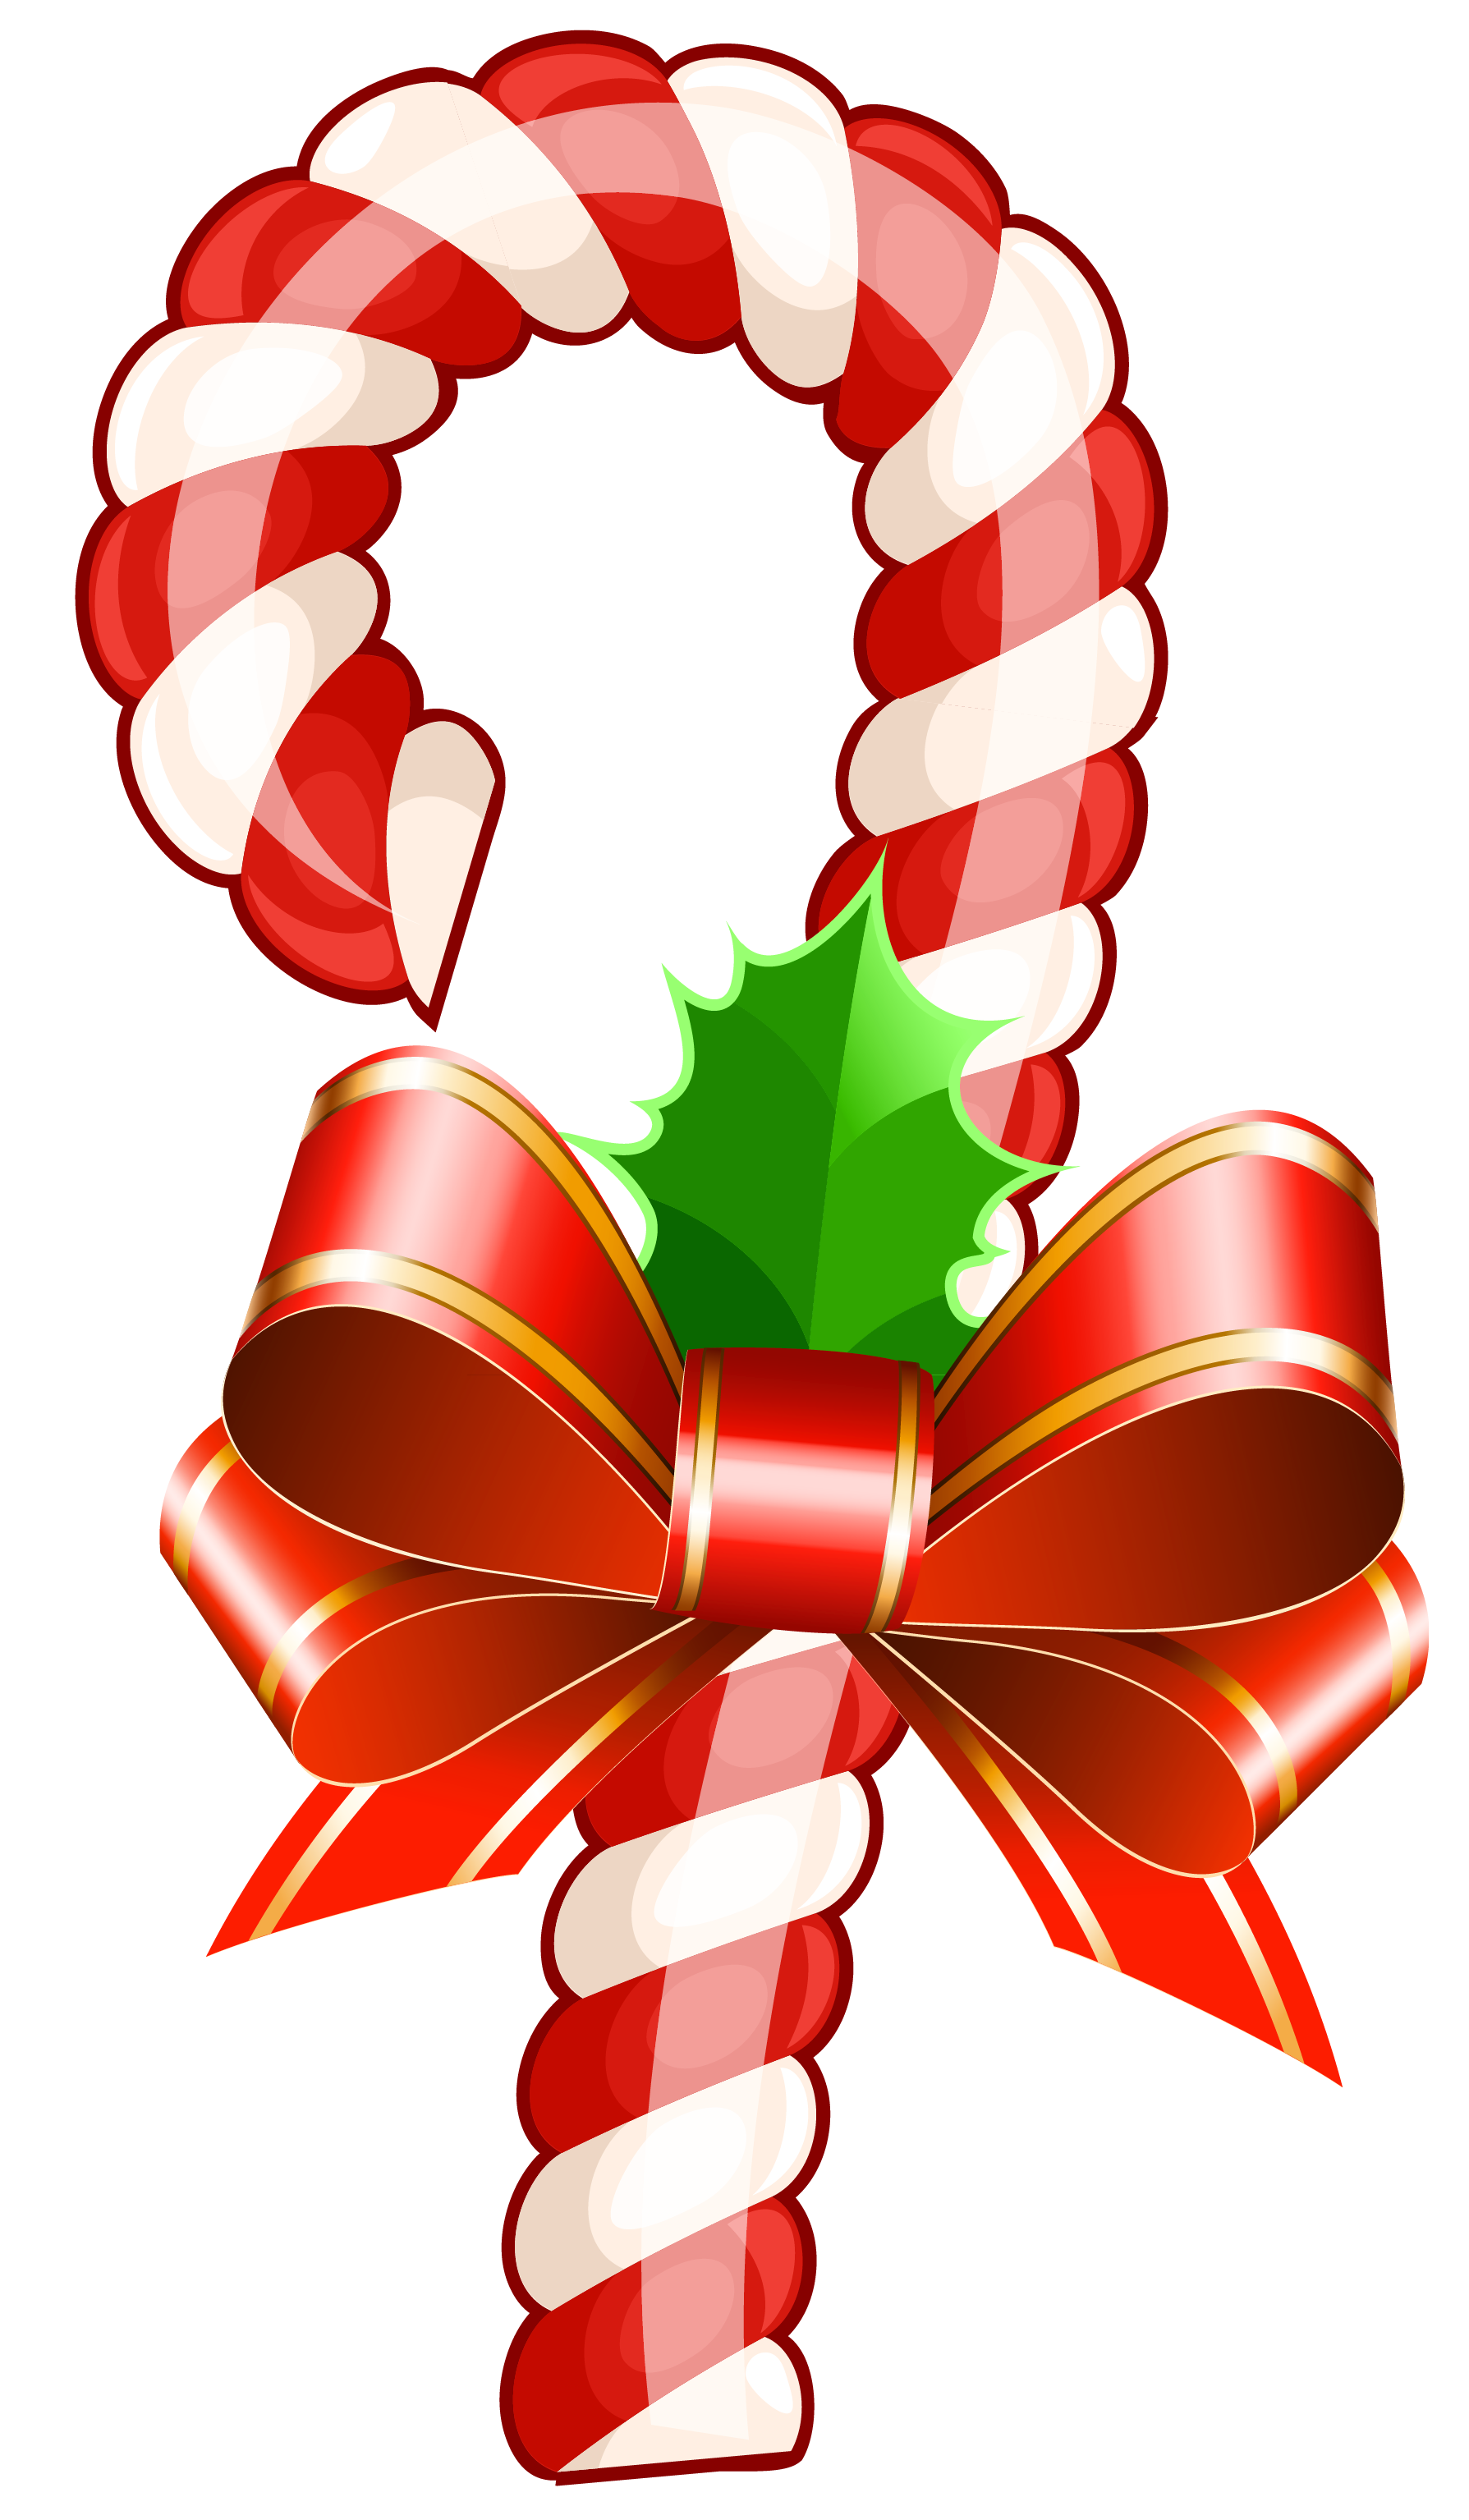 Christmas Candy Clipart Cliparts Co-Christmas Candy Clipart Cliparts Co-4